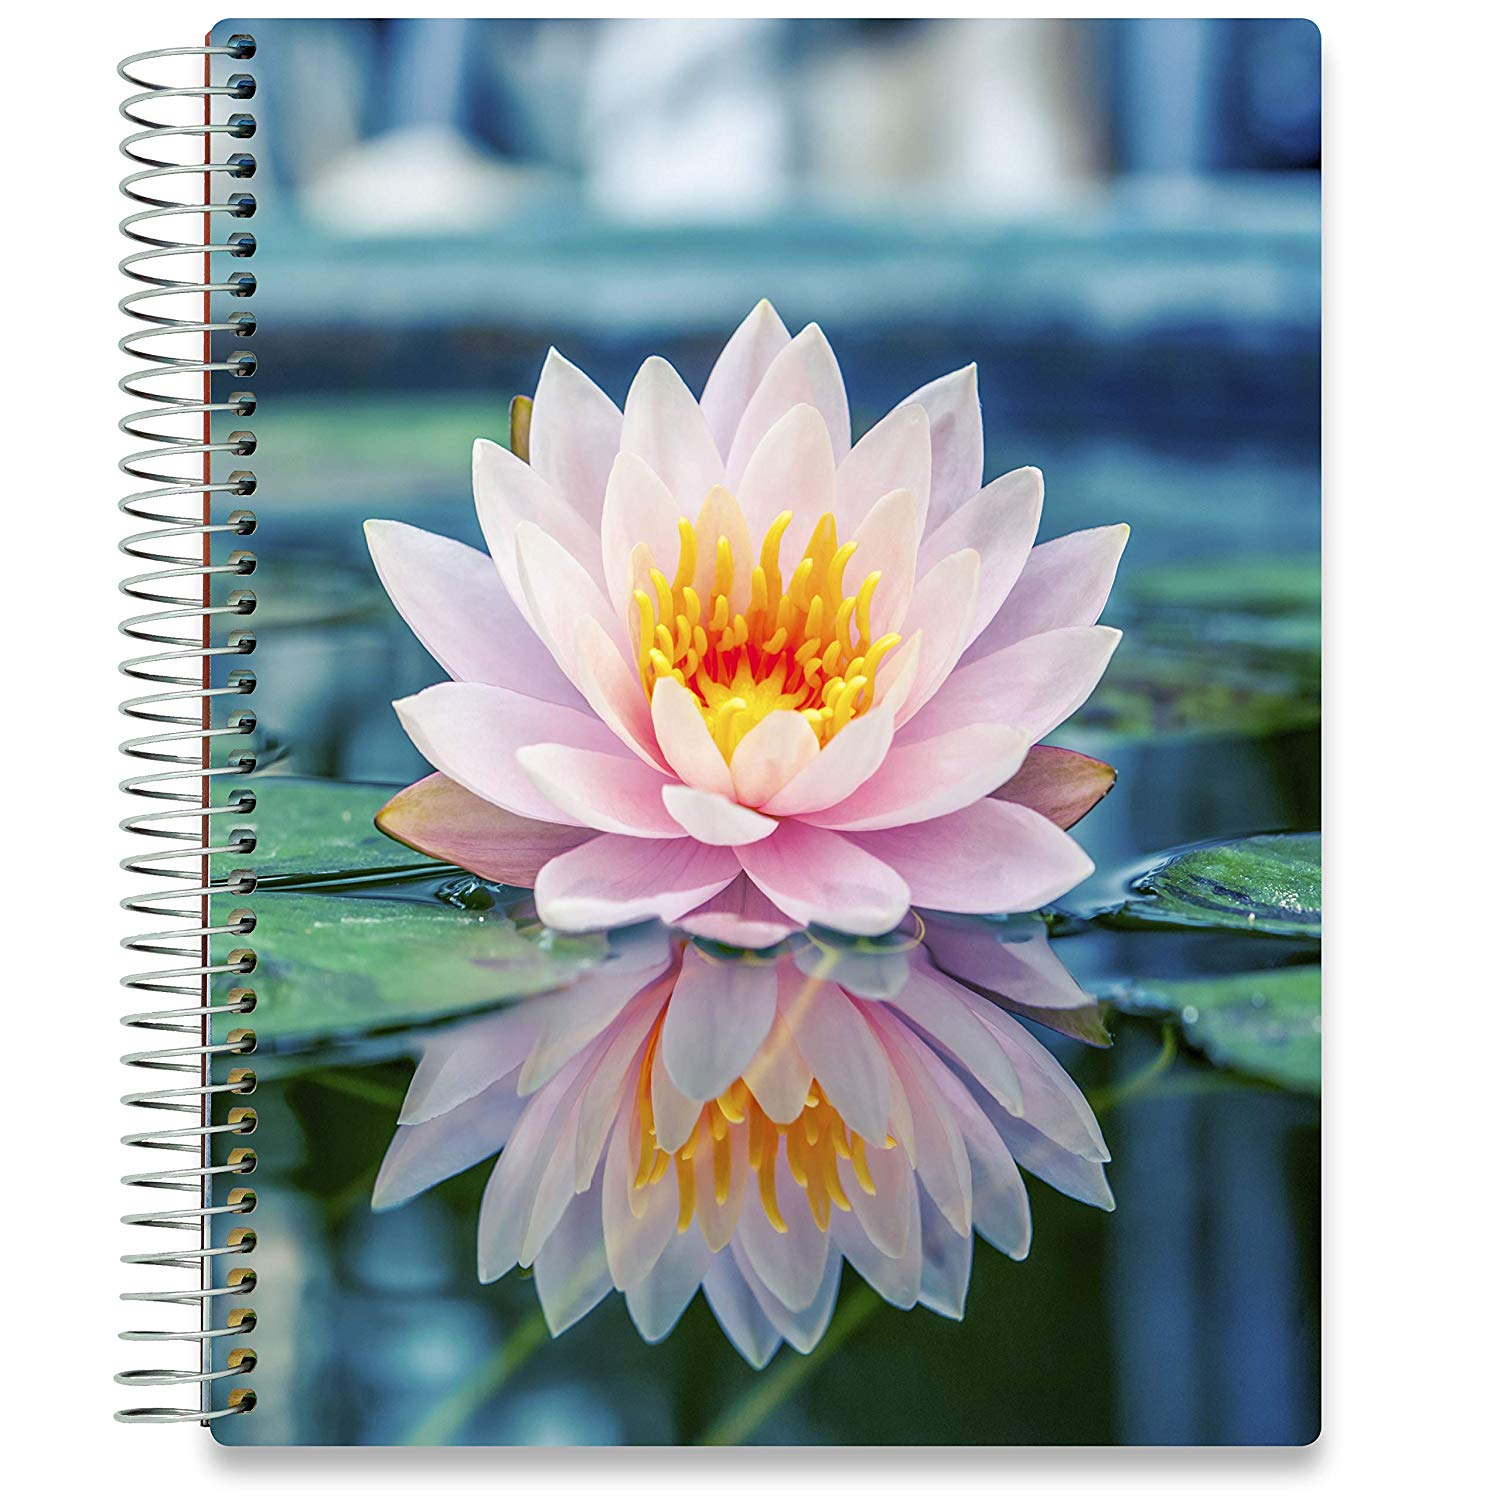 NEW: April 2020-2021 Planner - 8.5x11 - Pink Lotus-Office Product-Tools4Wisdom